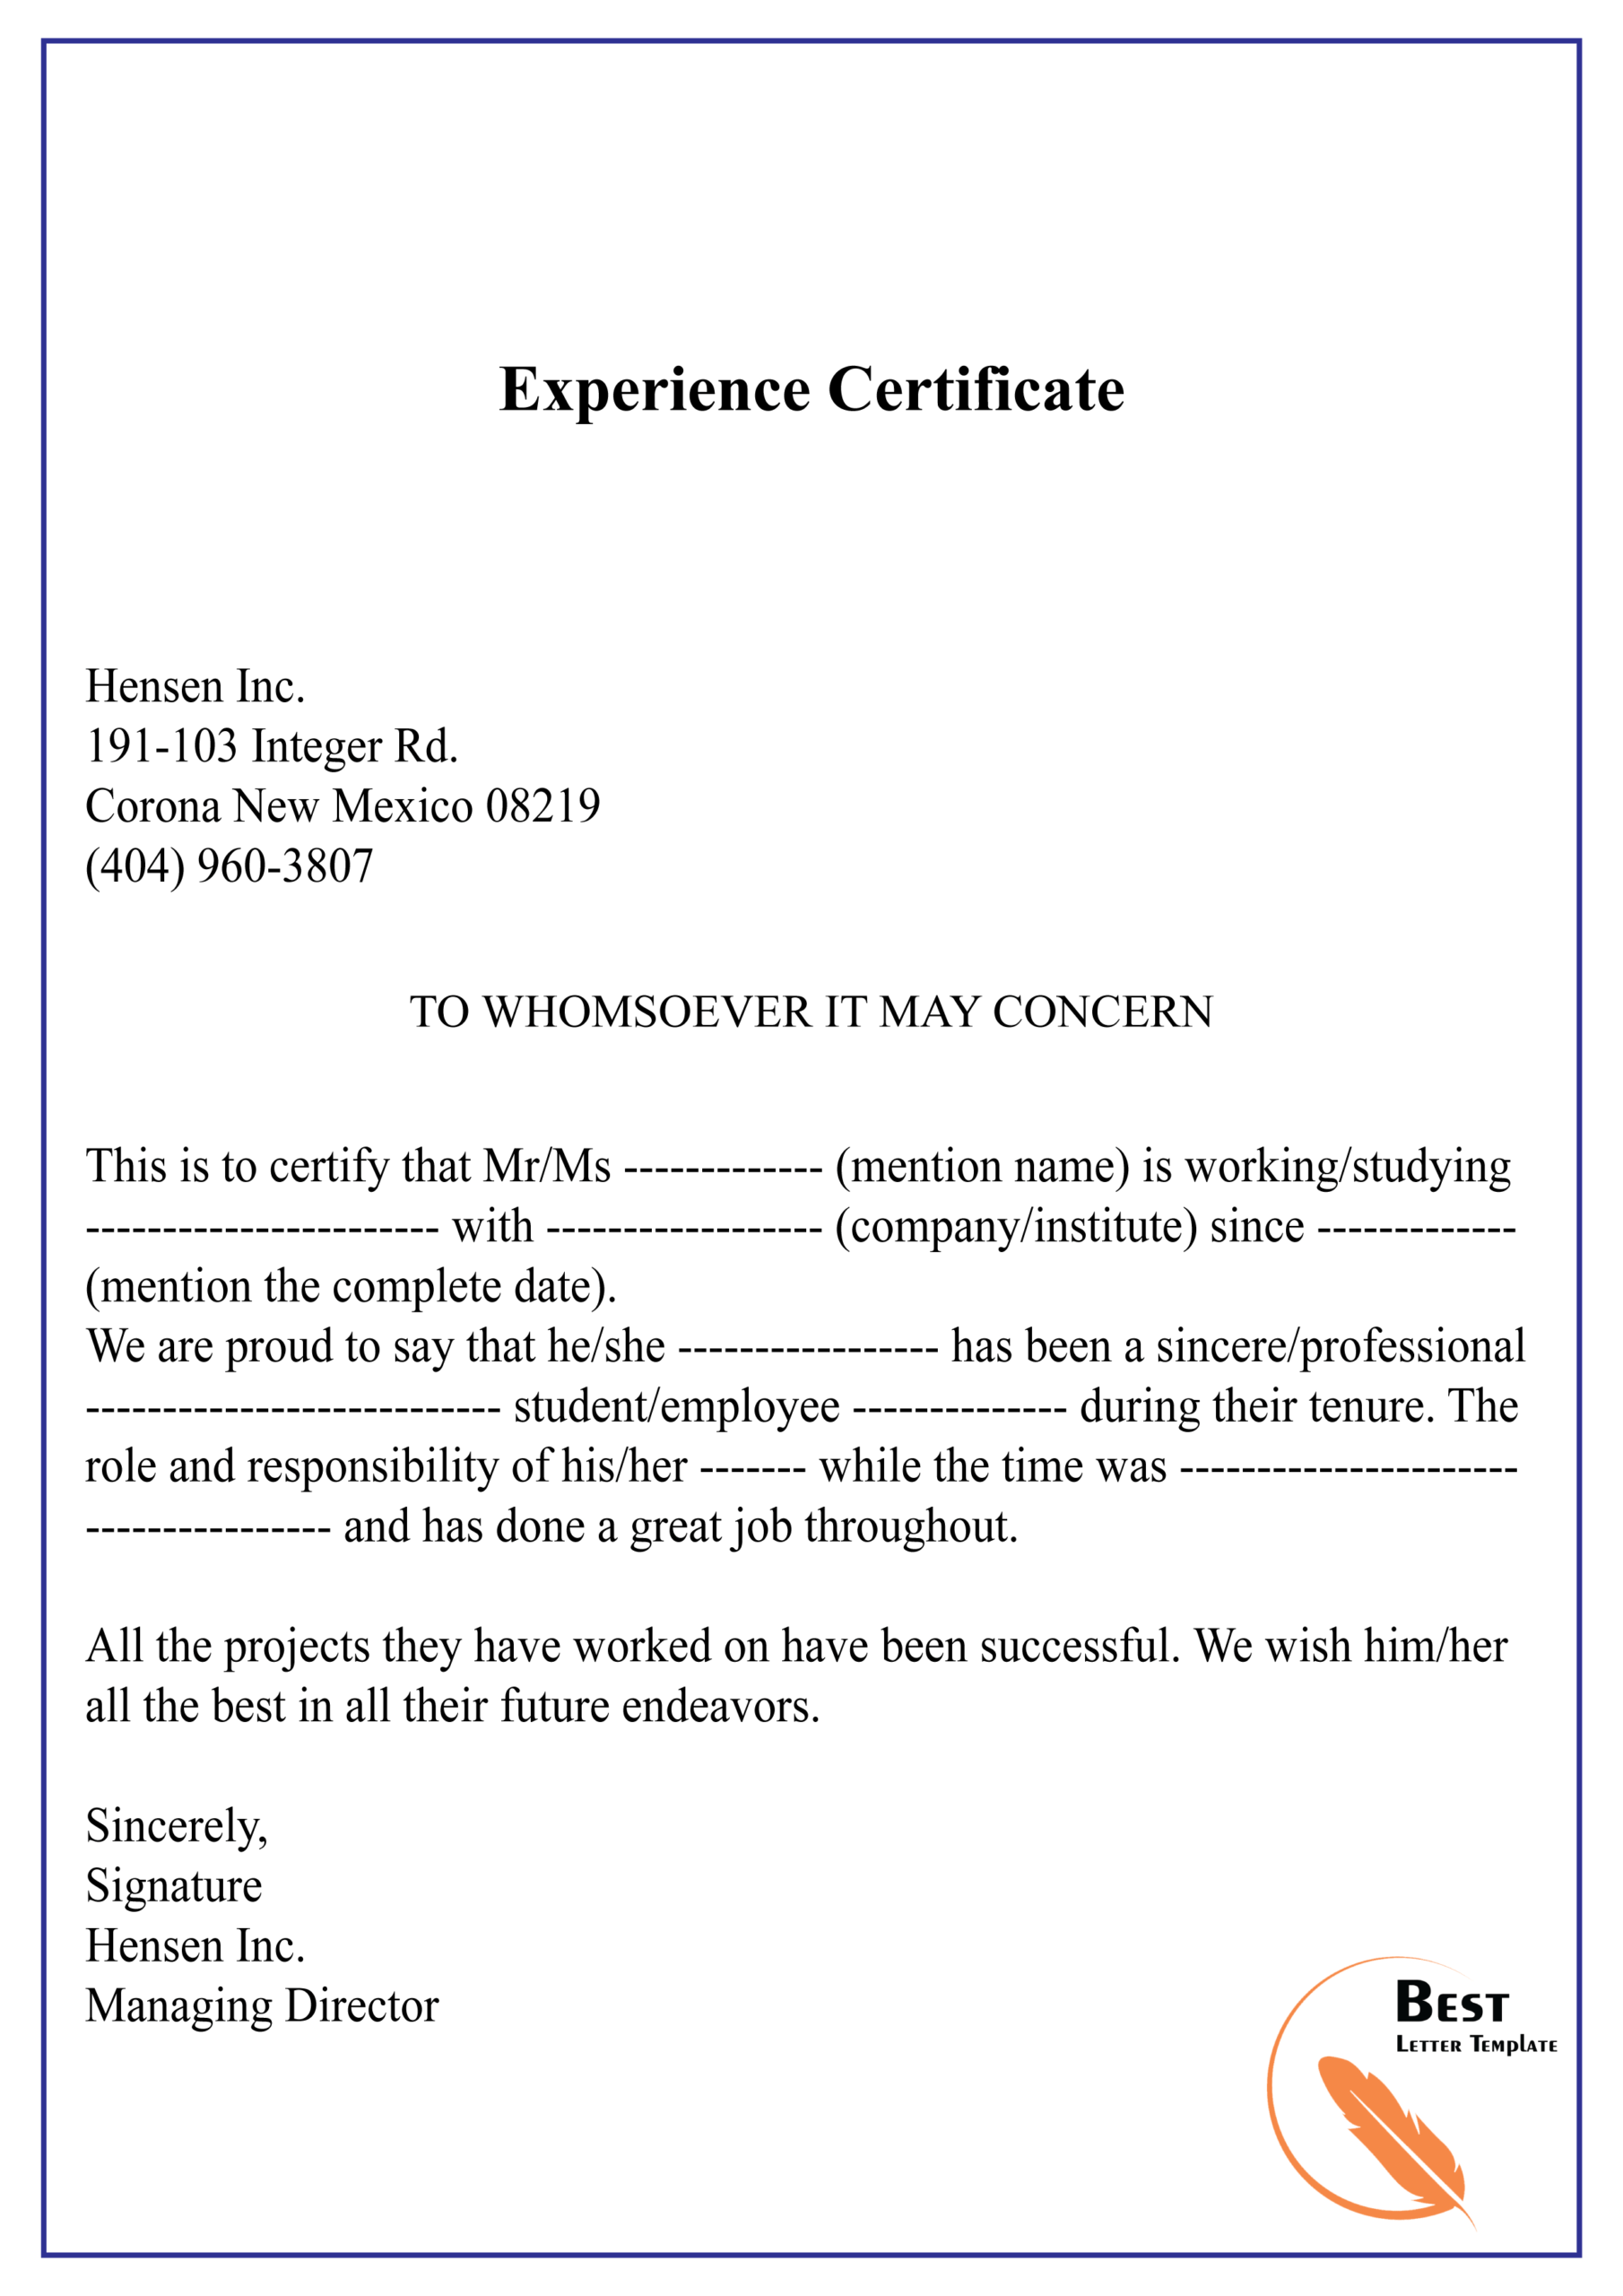 Experience Certificate 01 | Best Letter Template Within Template Of Experience Certificate